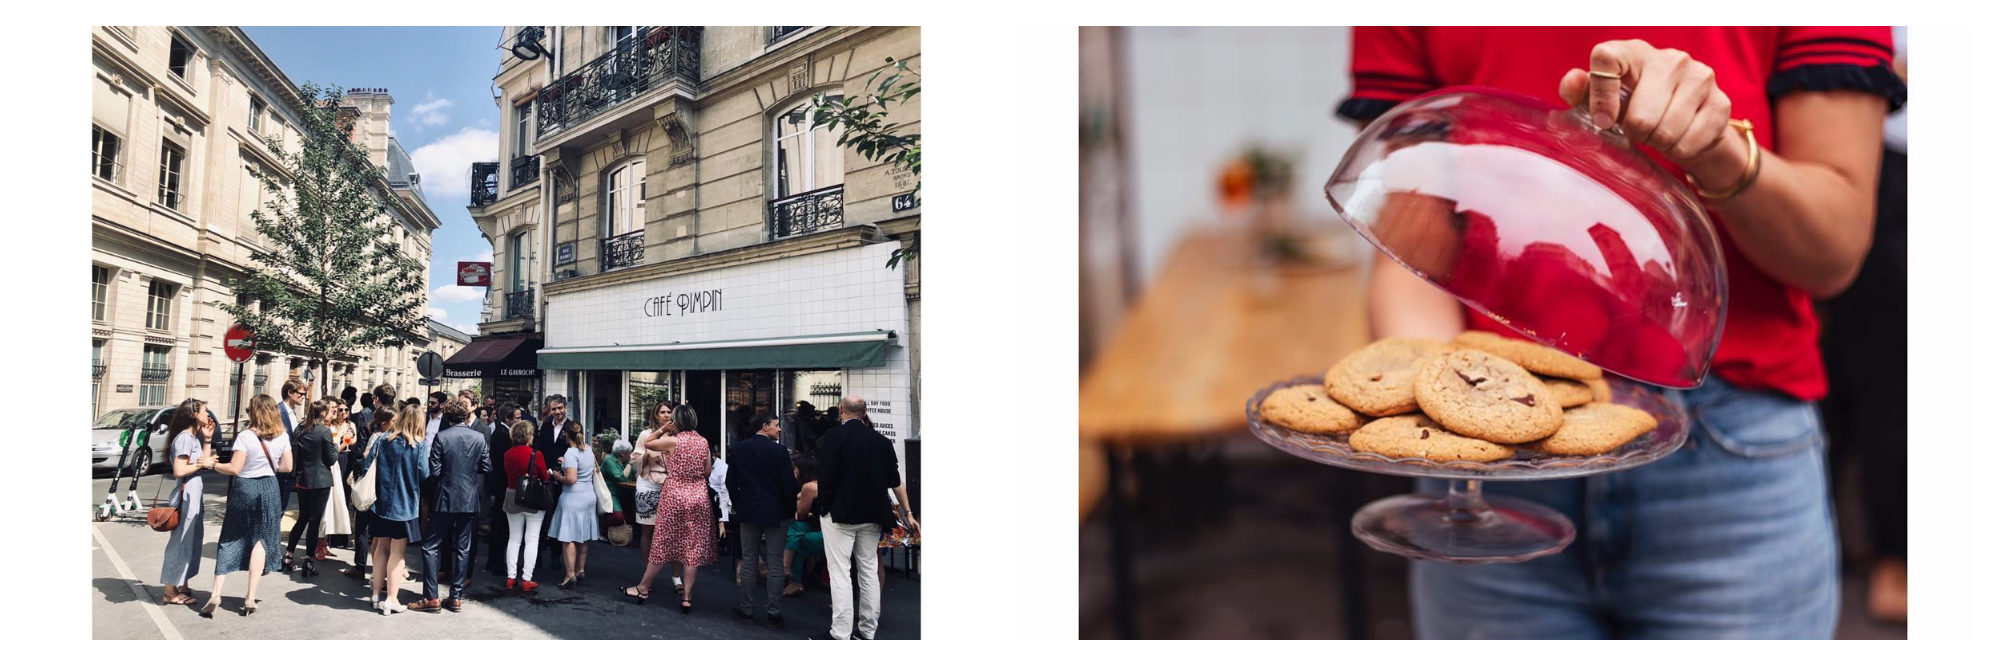 The queue outside Café Pimpim (left) and a woman holding freshly baked biscuits (right).